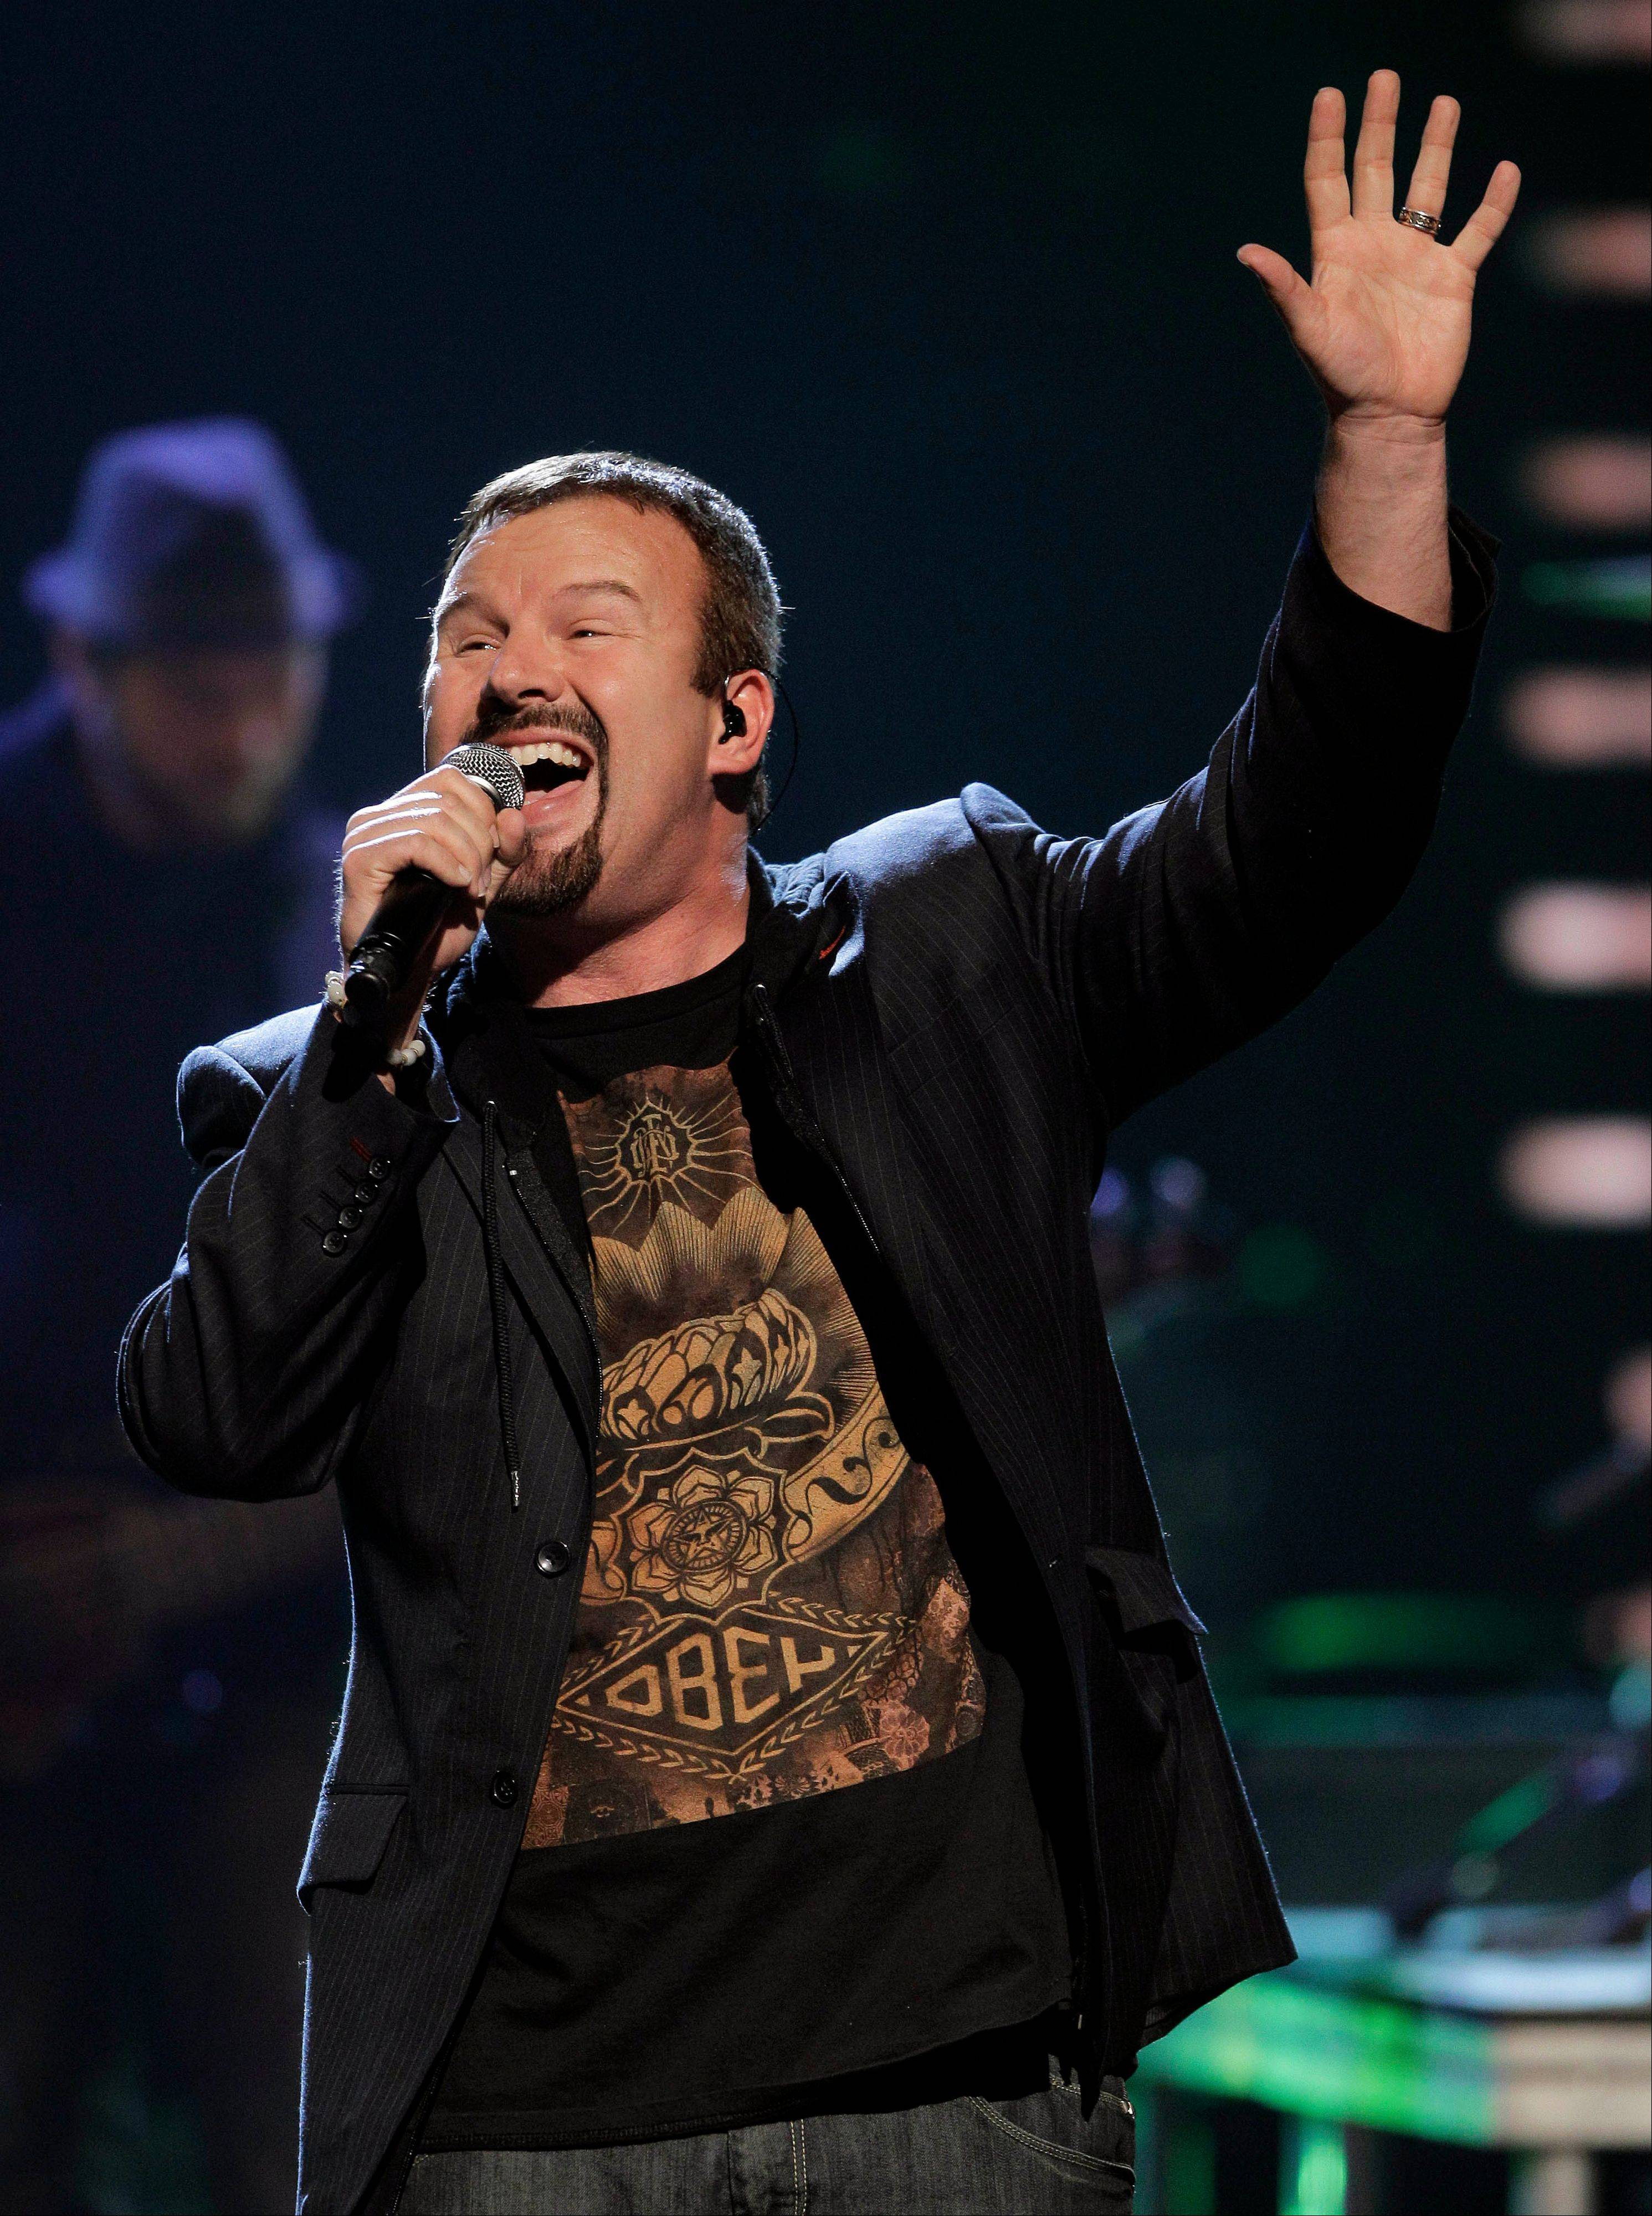 Mark Hall of Casting Crowns comes to the Sears Centre Arena in Hoffman Estates at 7 p.m. Friday, March 14.